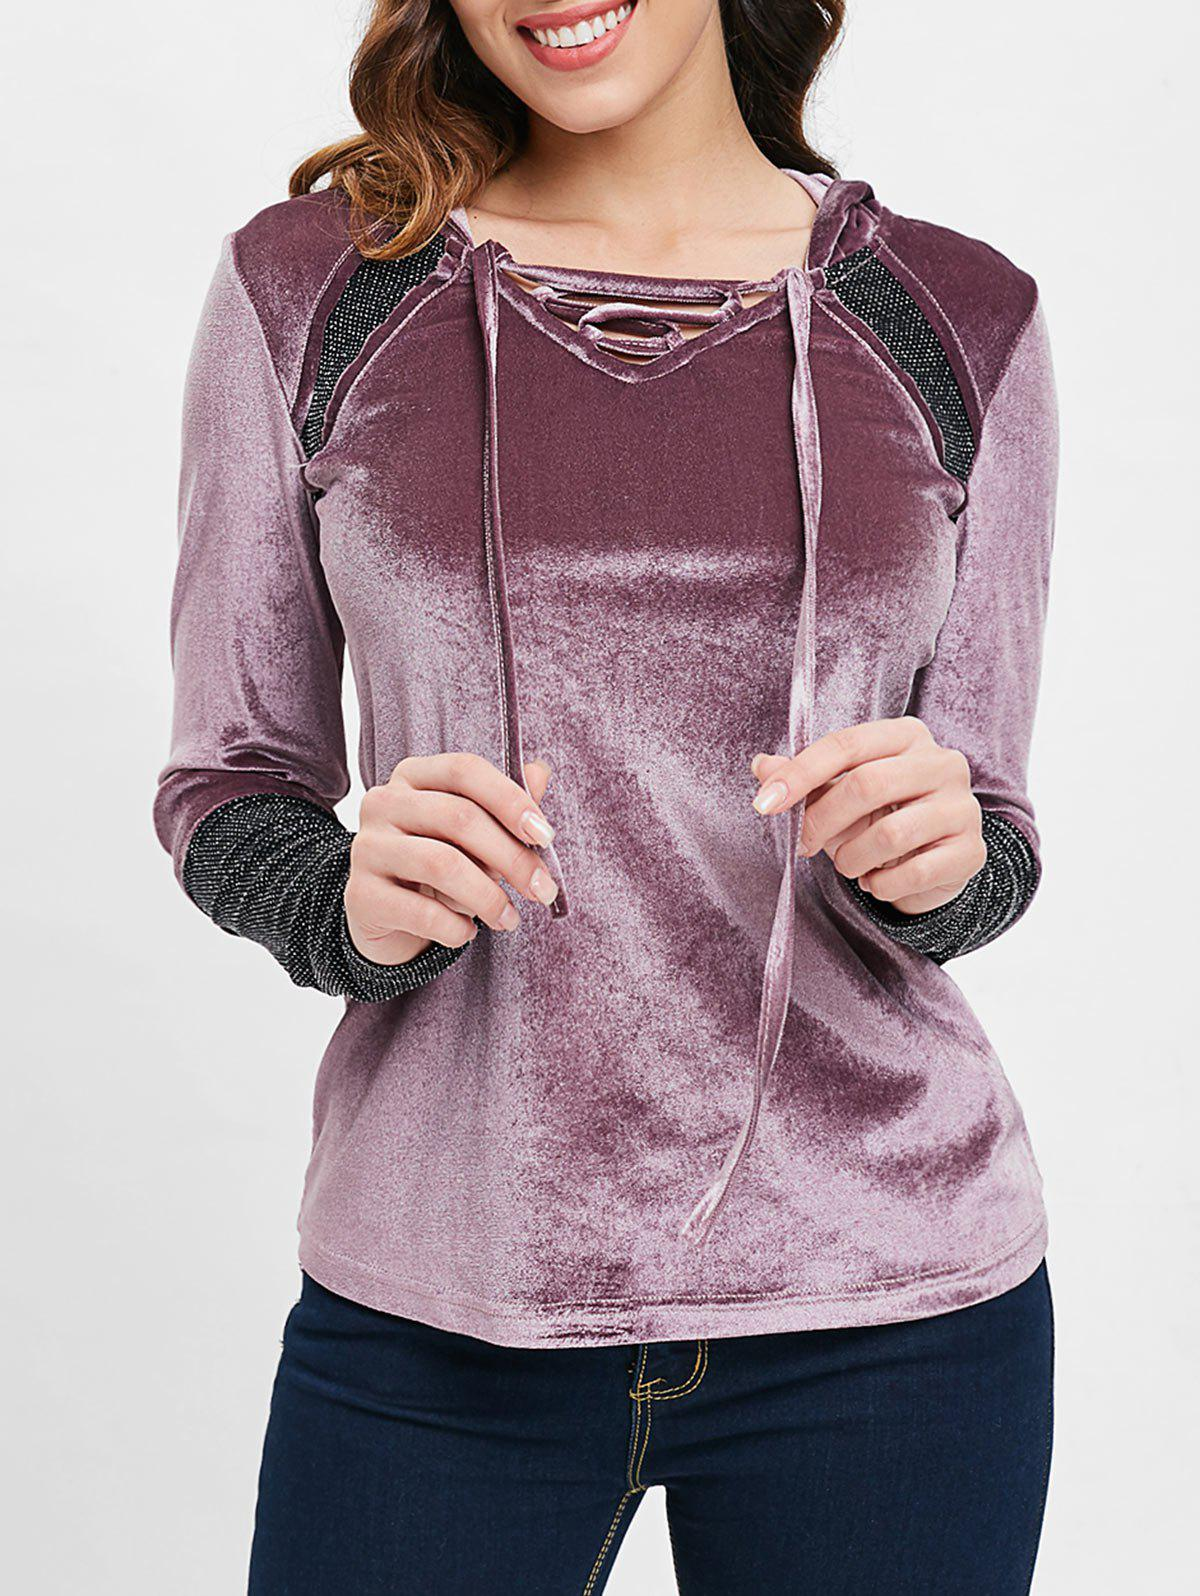 Store Criss Cross Collar Velvet Hooded T-shirt